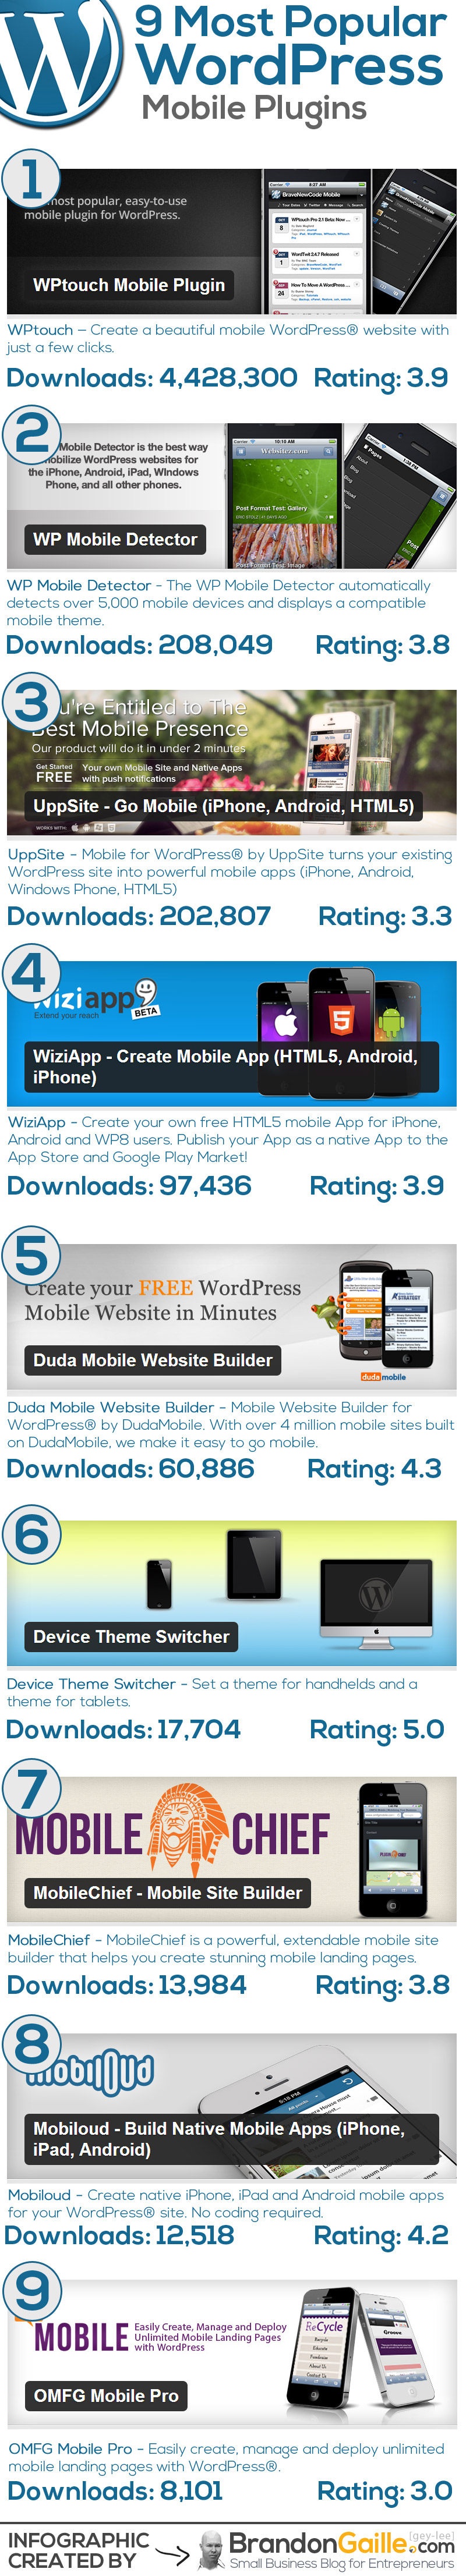 Best-Wordpress-Mobile-Plugins-Infographic